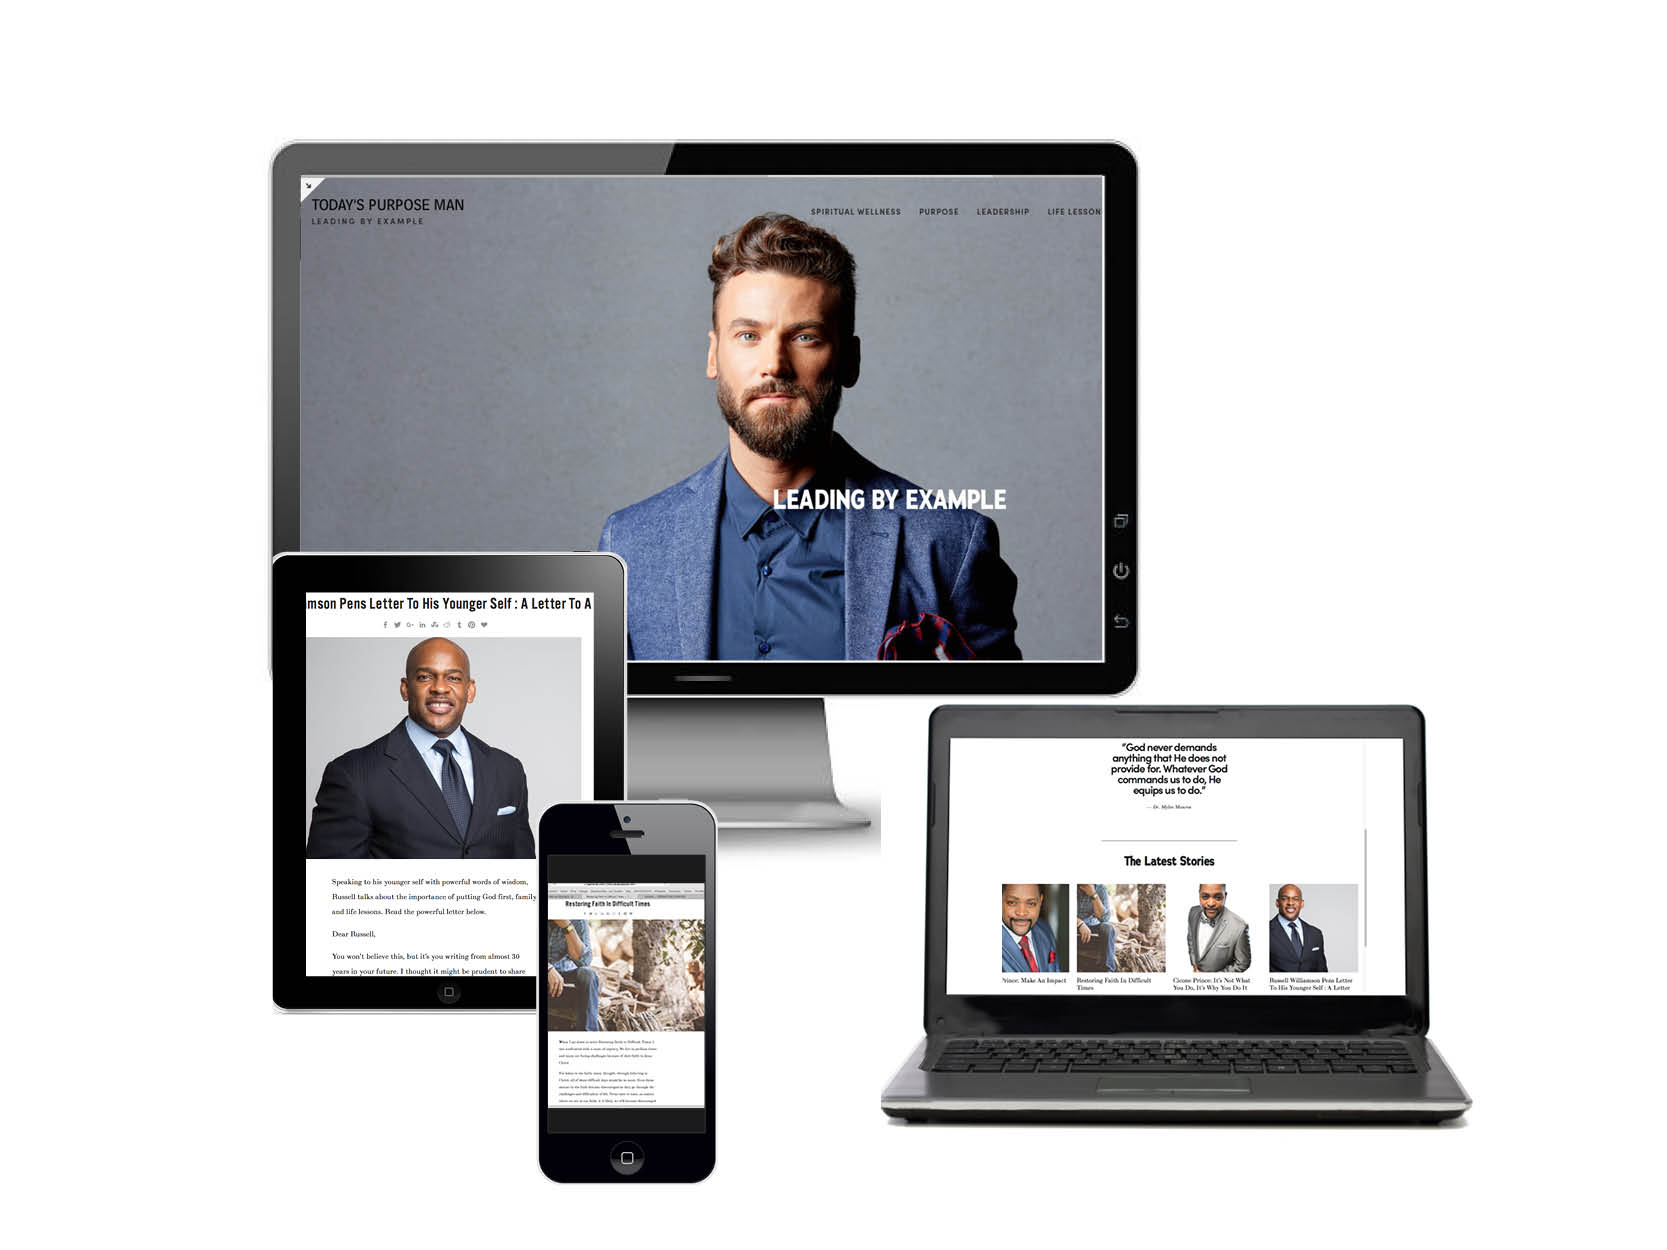 TODAY'S PURPOSE MAN - Leading by Example- Todayspurposeman.com is a men's guide to living and leading God's way. The online publication speaks to the key areas of a Purpose-Driven man's life: his lifestyle, spiritual wellness and leadership role.Advertise >Write for TPM >Visit: Today's Purpose Man